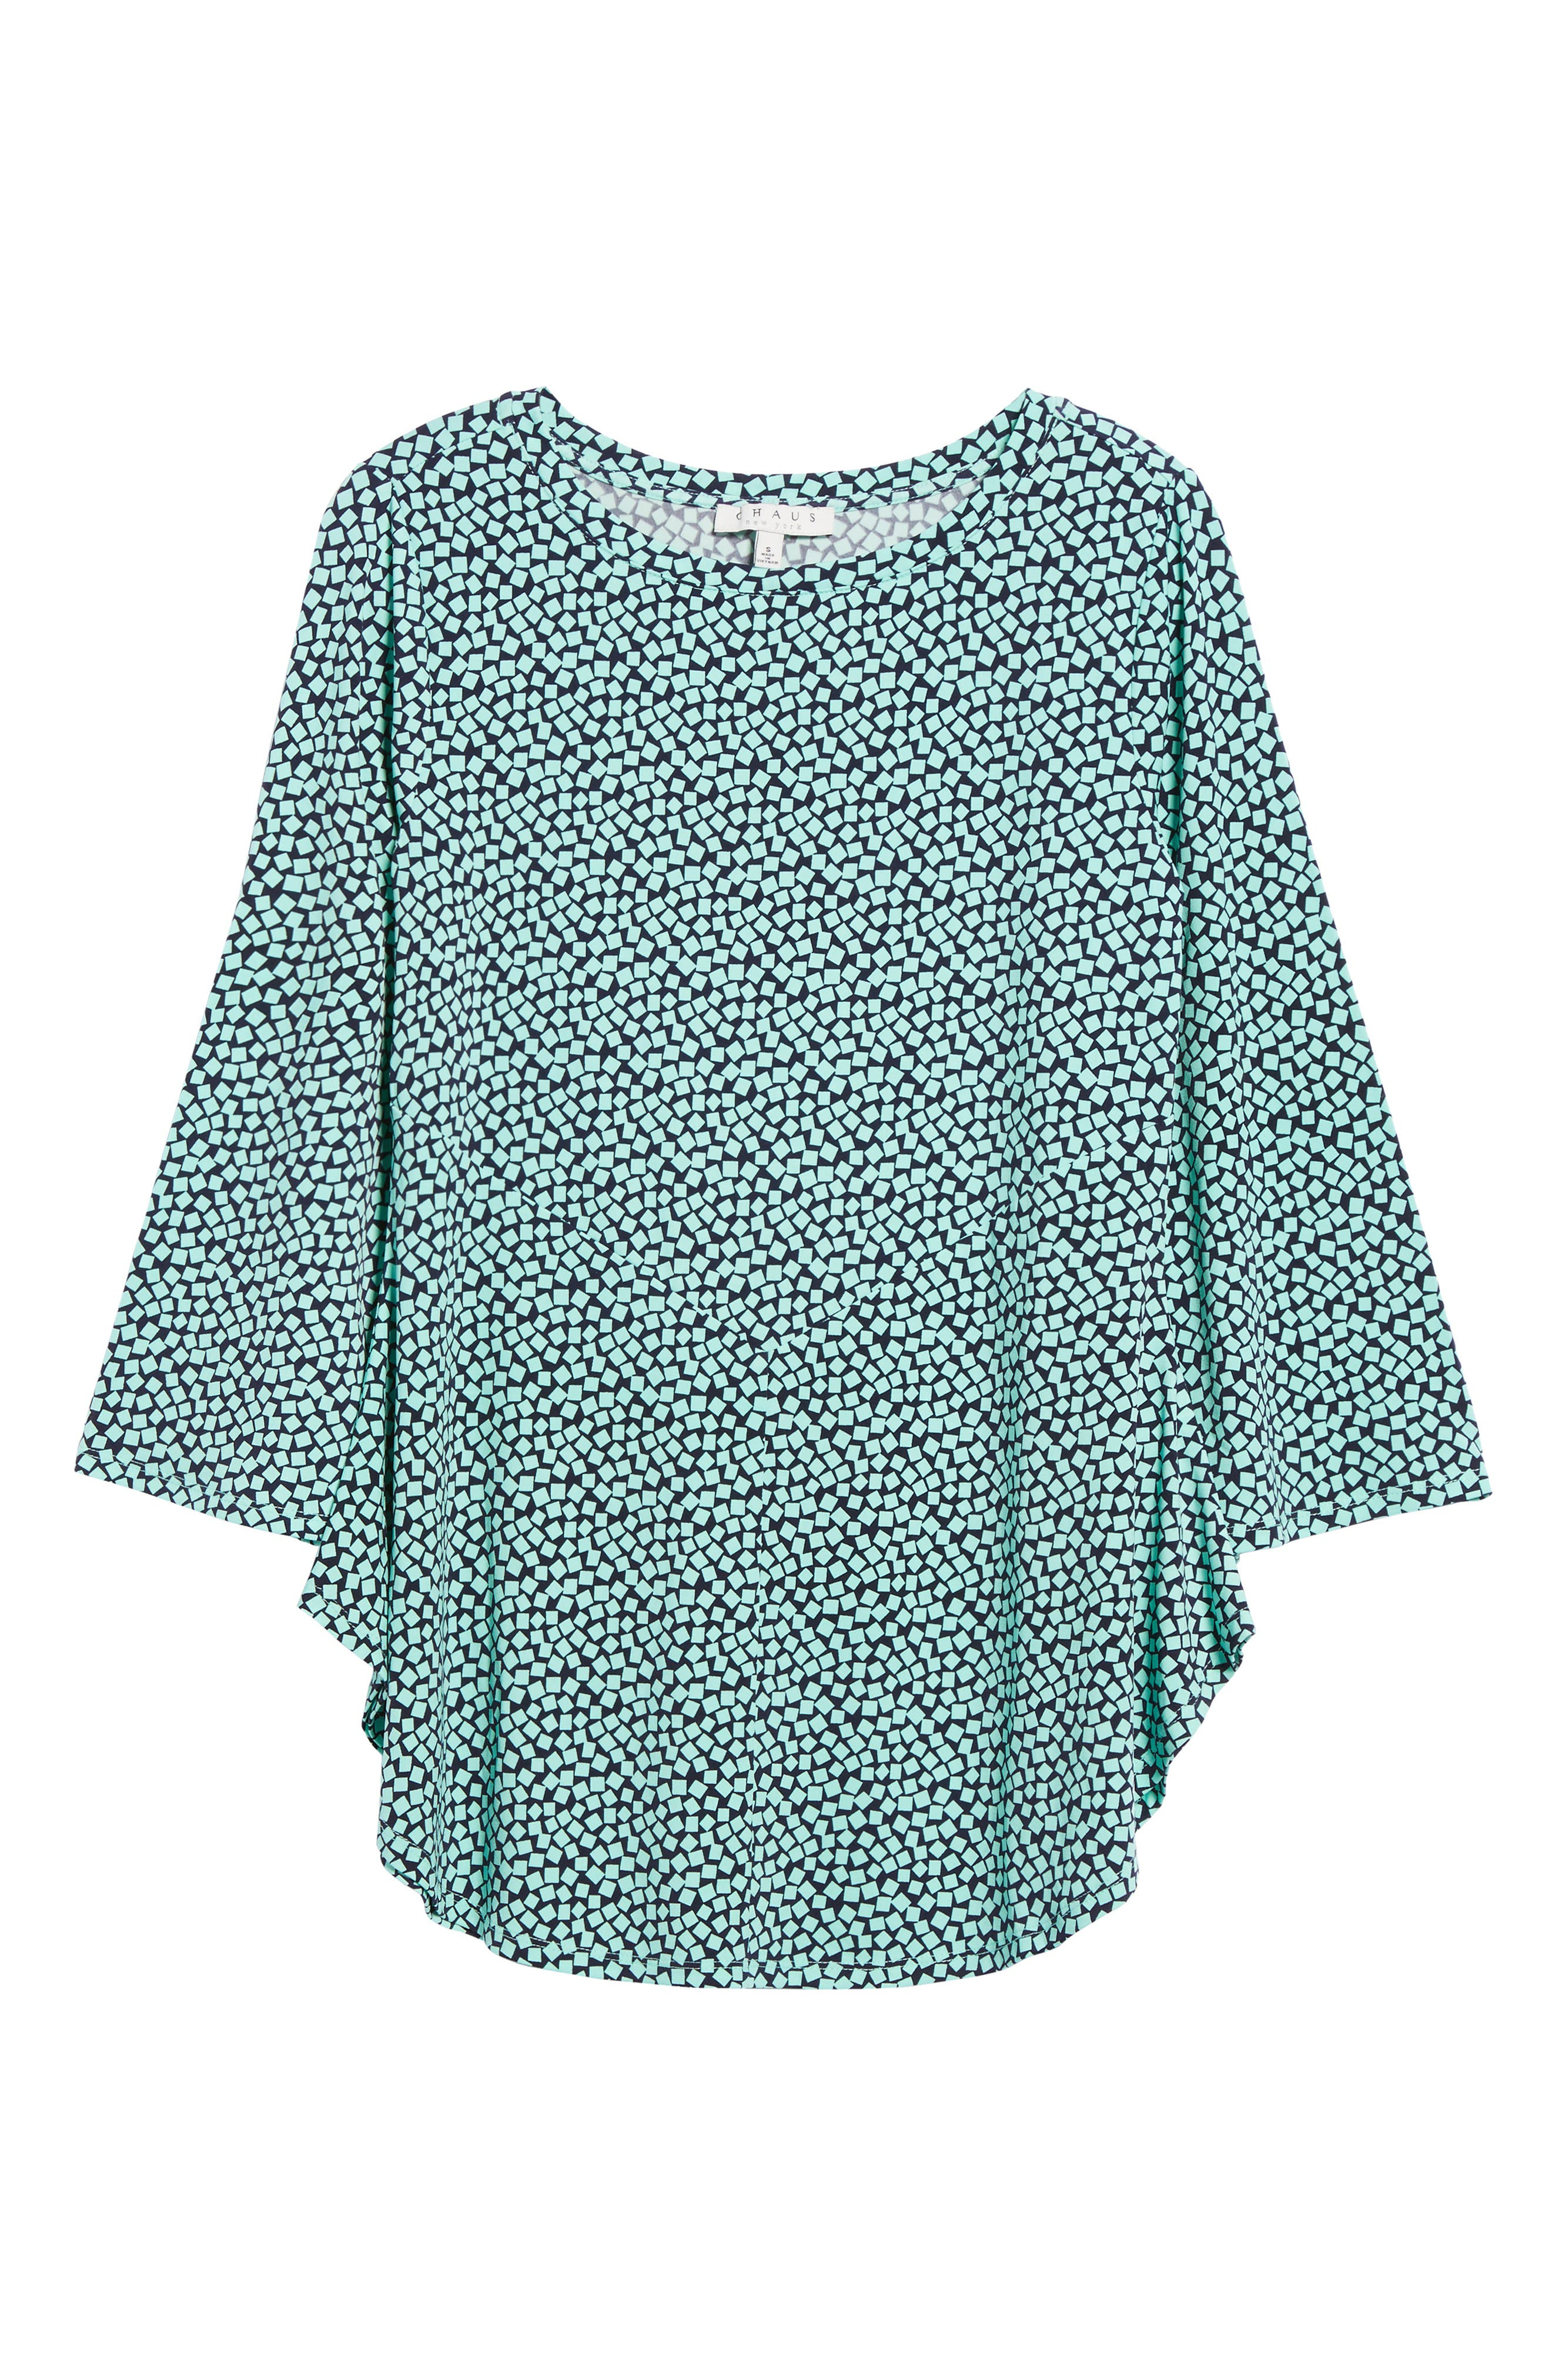 Bell Sleeve Cube Print Top,                             Alternate thumbnail 6, color,                             336